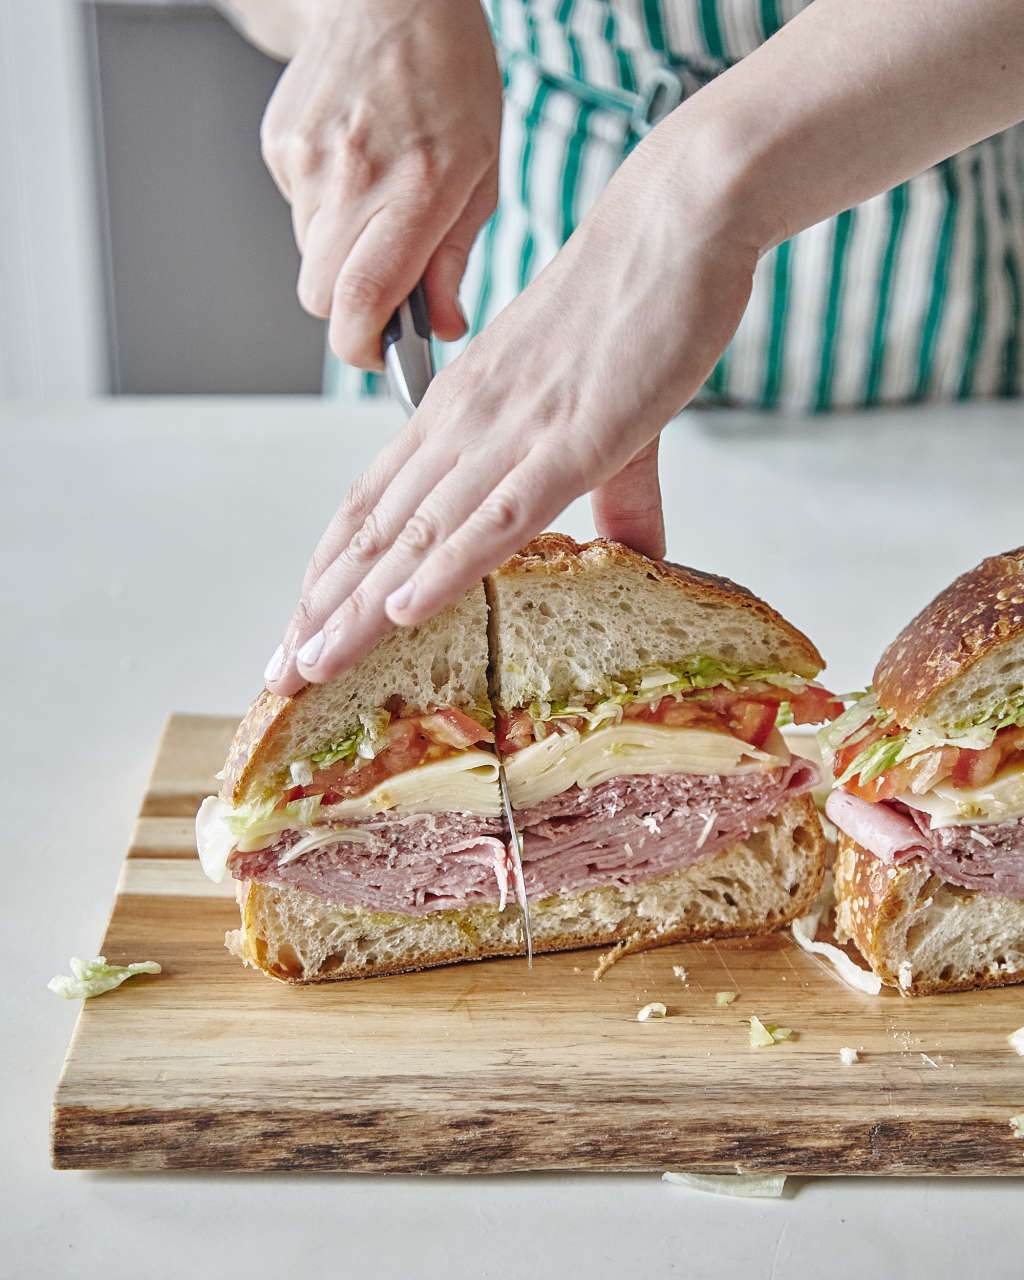 25 Reasons Why Tonight's Dinner Should Be a Sandwich